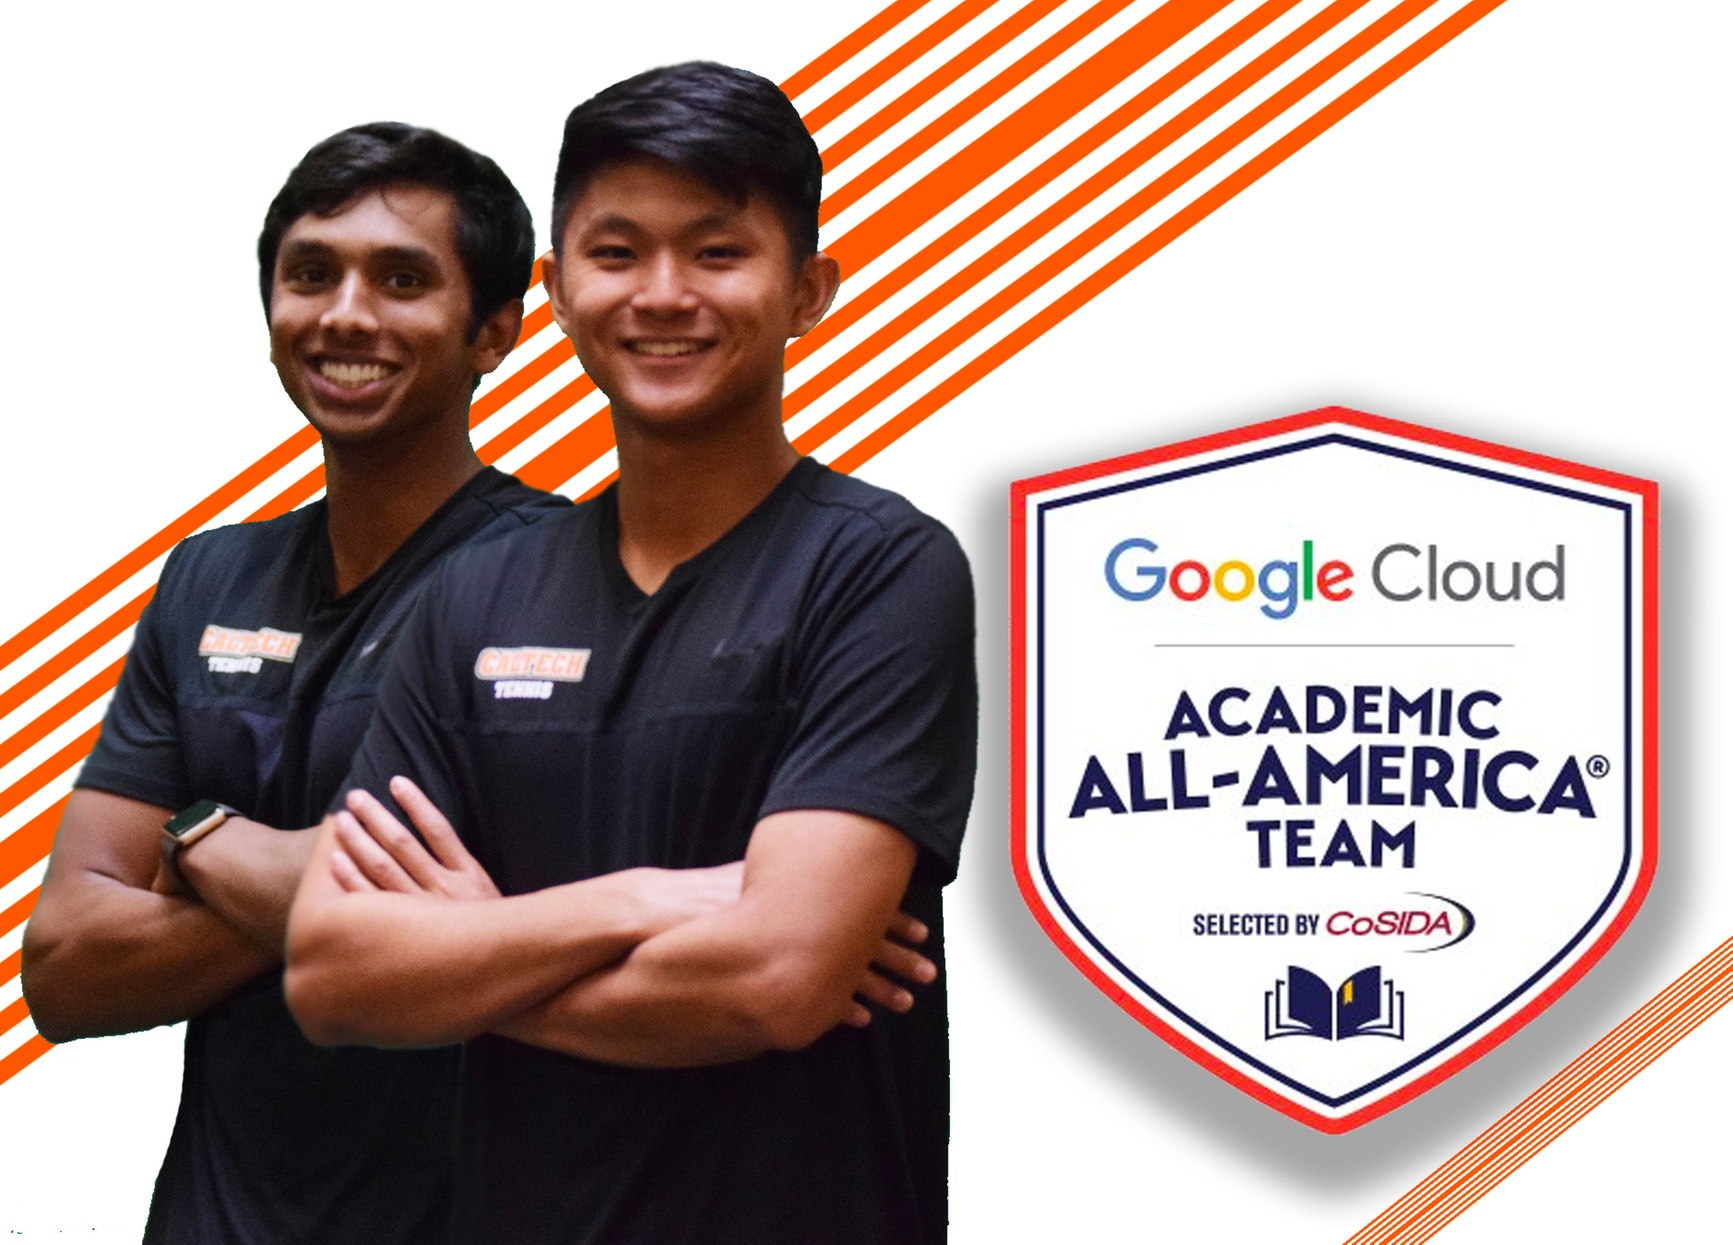 Shanker, Wei Named Google Cloud Academic All-Americans